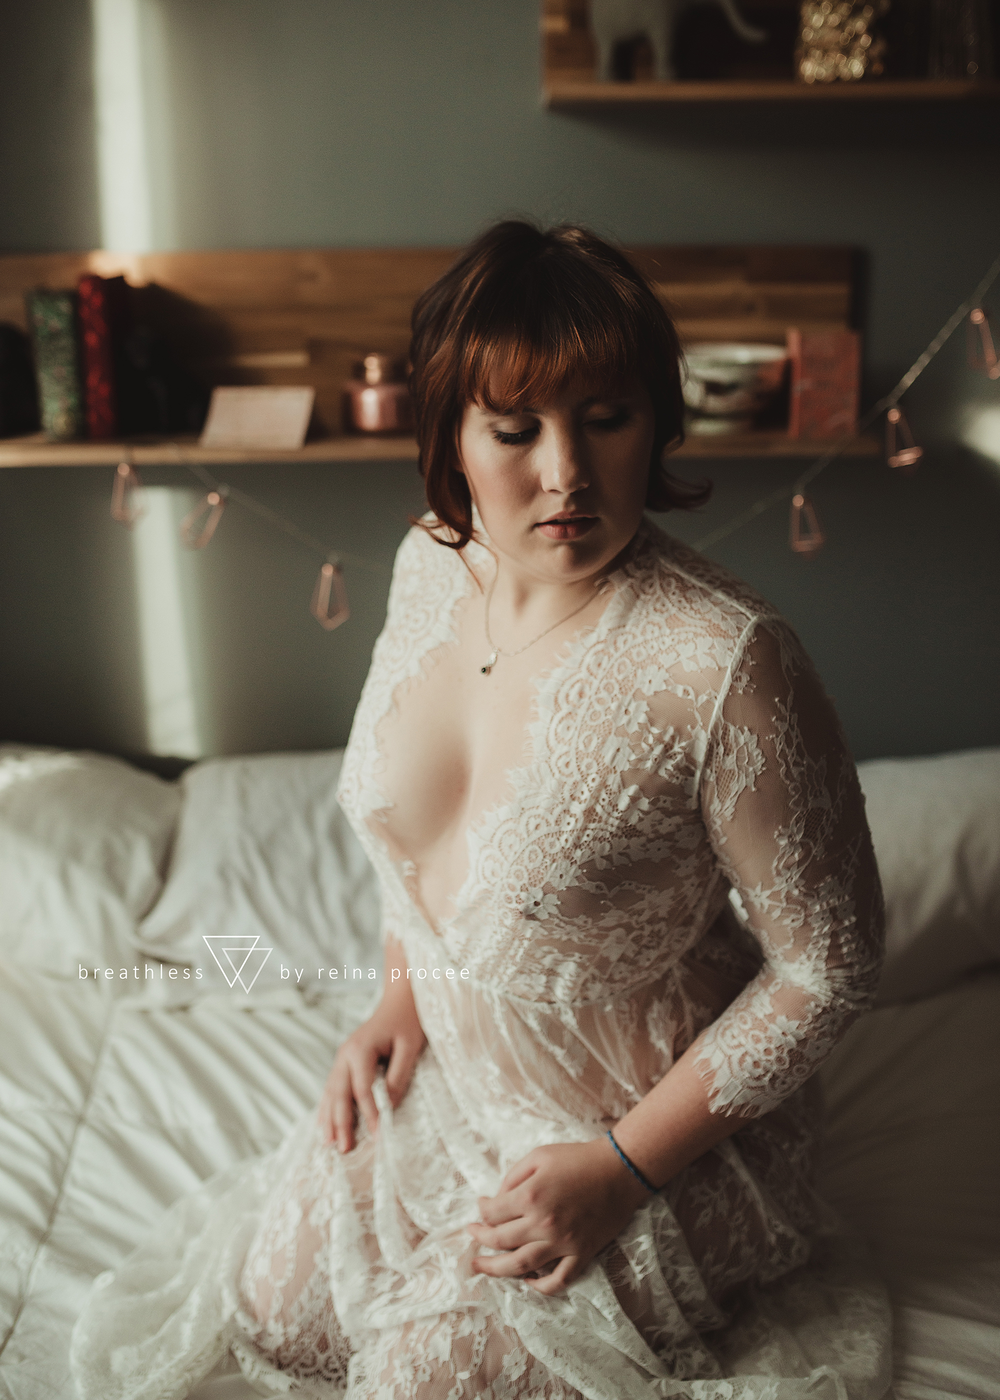 boudoir-erotic-pictures-photos-montreal-quebec-beauty-portrait-shots-7.png